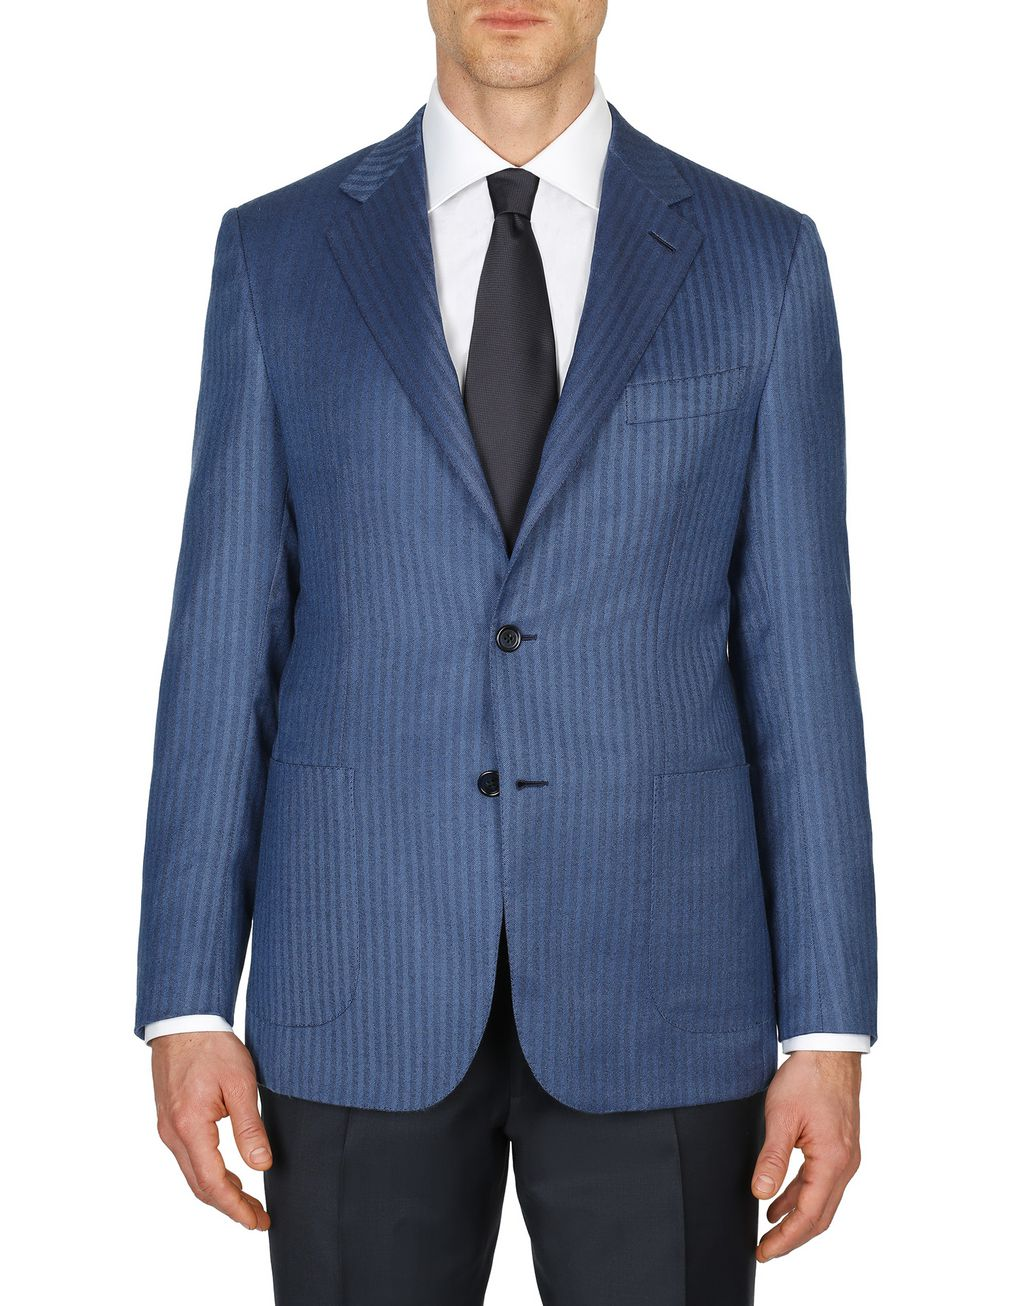 BRIONI Bluette Herringbone Condotti Cashmere Jacket Suits & Jackets Man r